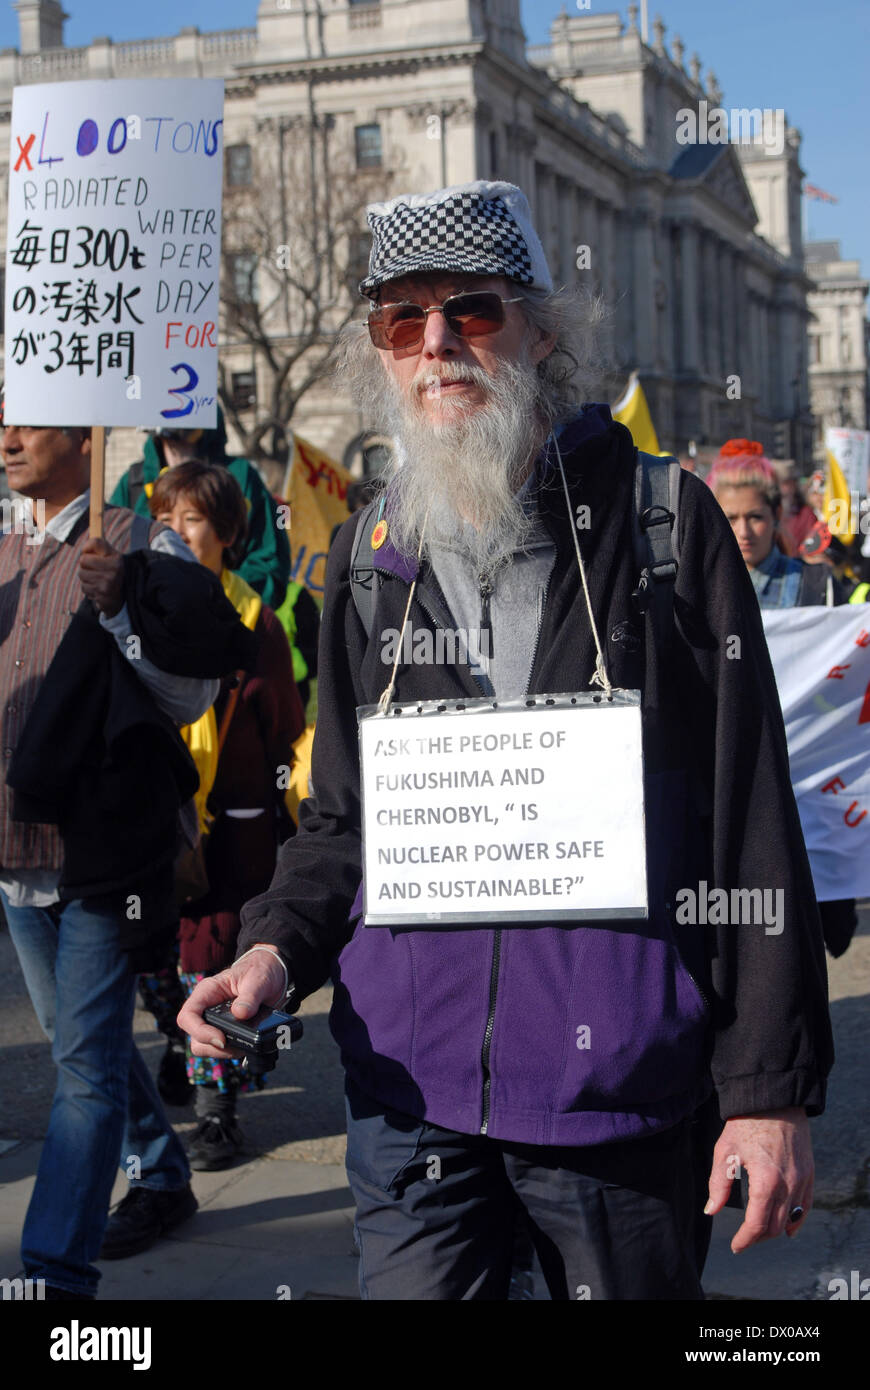 London, UK. 15th March 2014. Anti nuclear protest rally held outside Houses of Parliament. - Stock Image